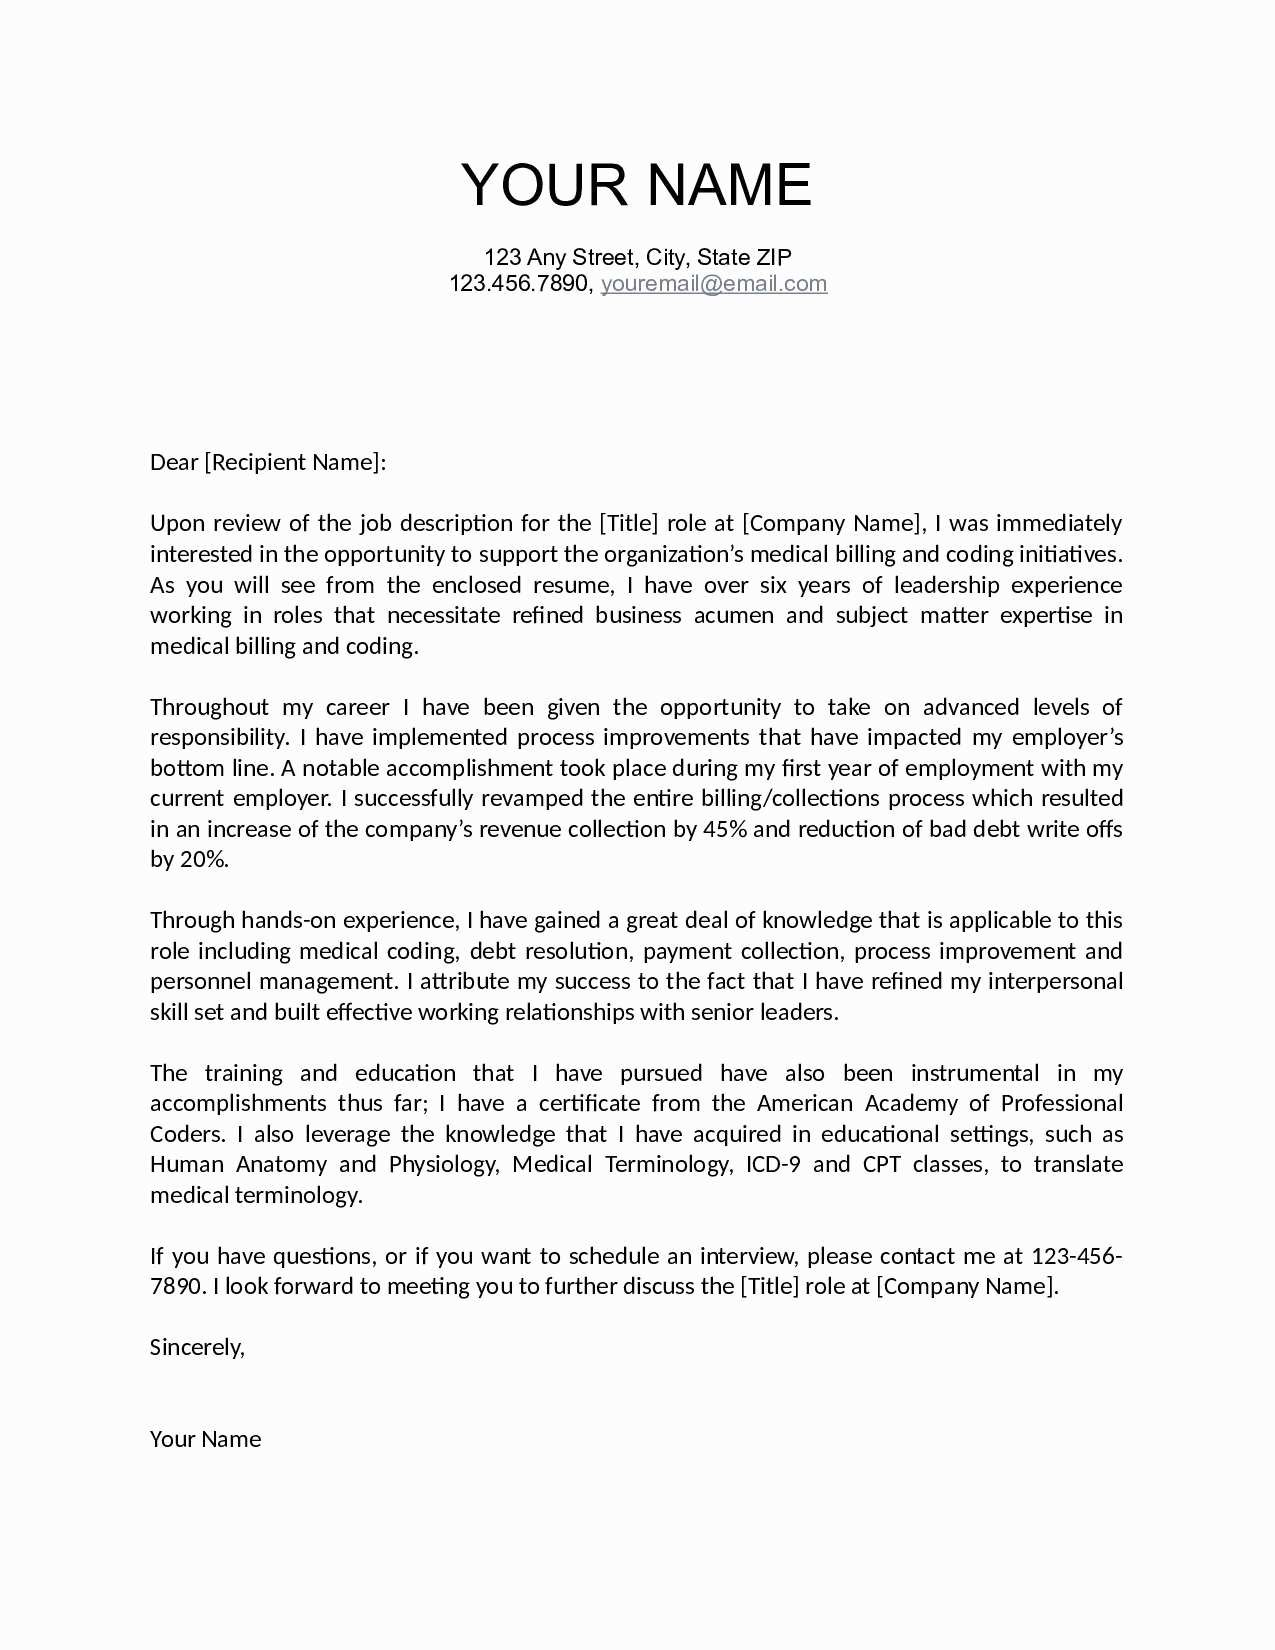 Formal Cover Letter Template - Job Fer Letter Template Us Copy Od Consultant Cover Letter Fungram